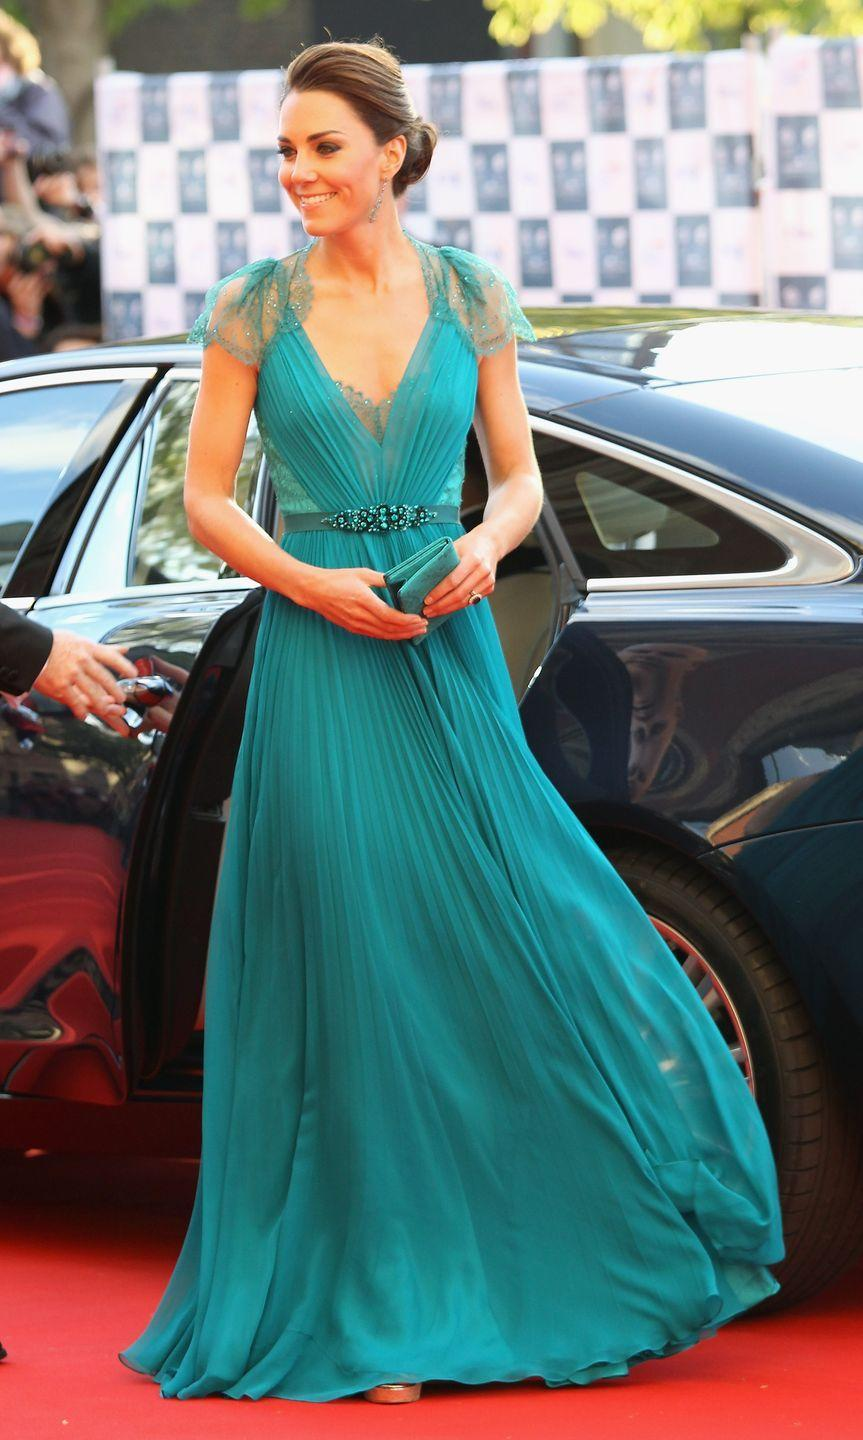 <p>While flashing midriff would be a breach of royal protocol, Kate Middleton did wearing a flowing turquoise gown by Jenny Packham to a charity concert in London in 2012 that's very Jasmine-esque.</p>